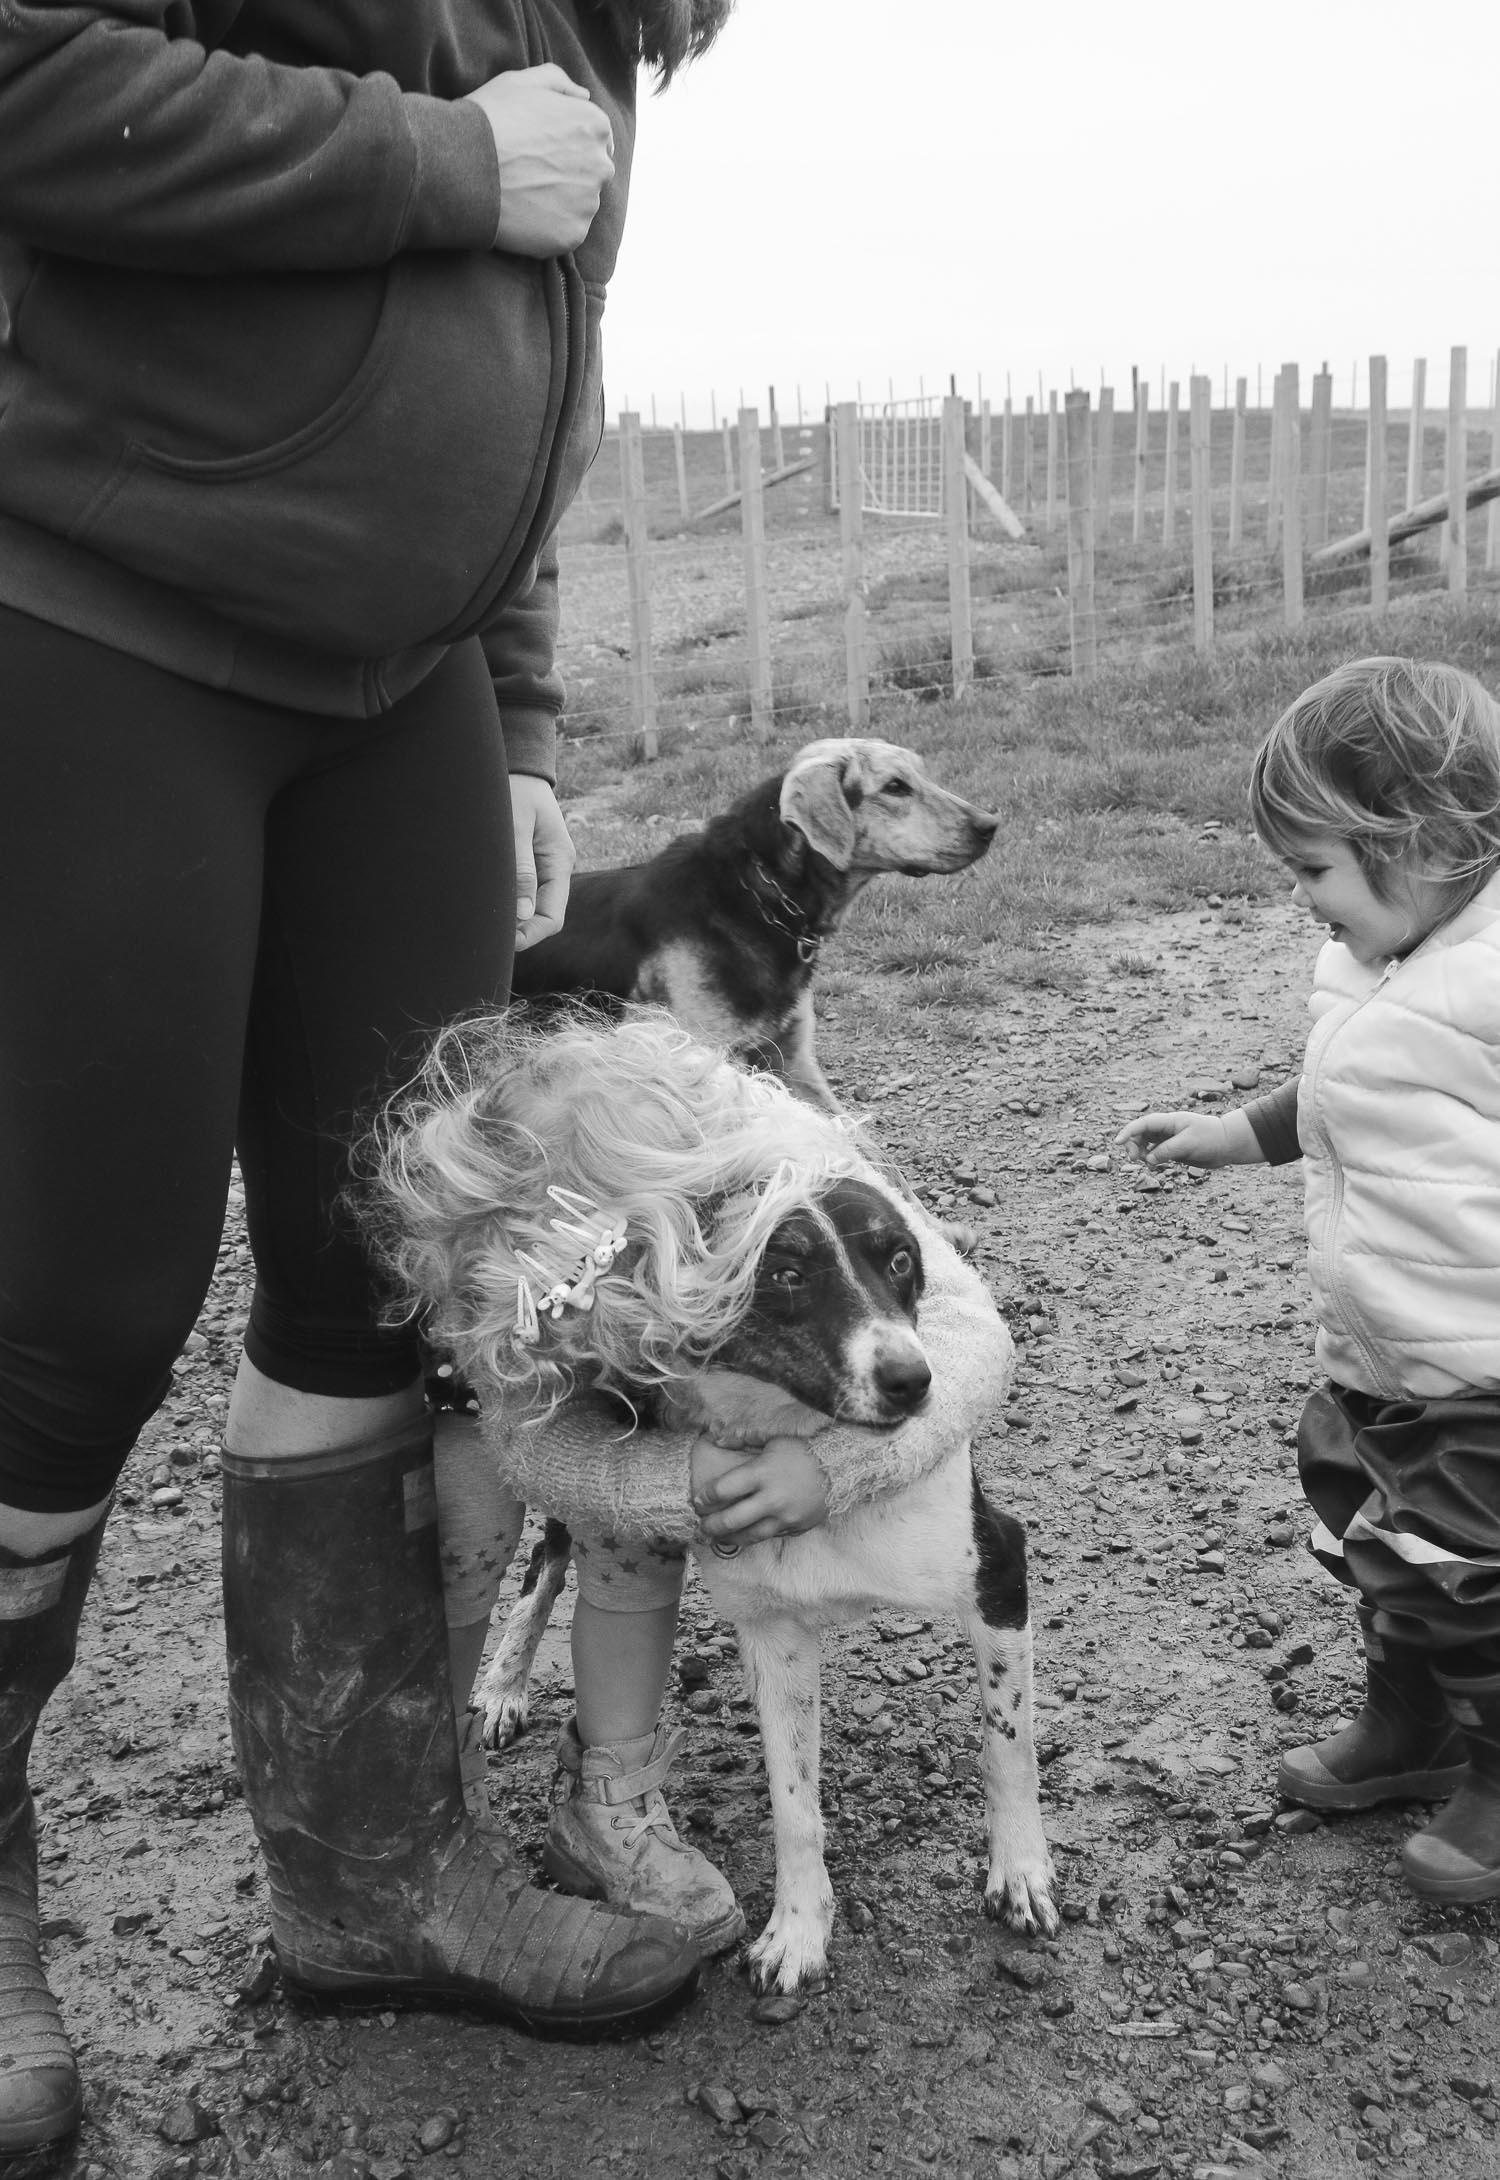 two-little-sisters-playing-with-dogs-at-mums-feet-mum-is-heavily-pregnant-all-wearing-gumboots.jpg